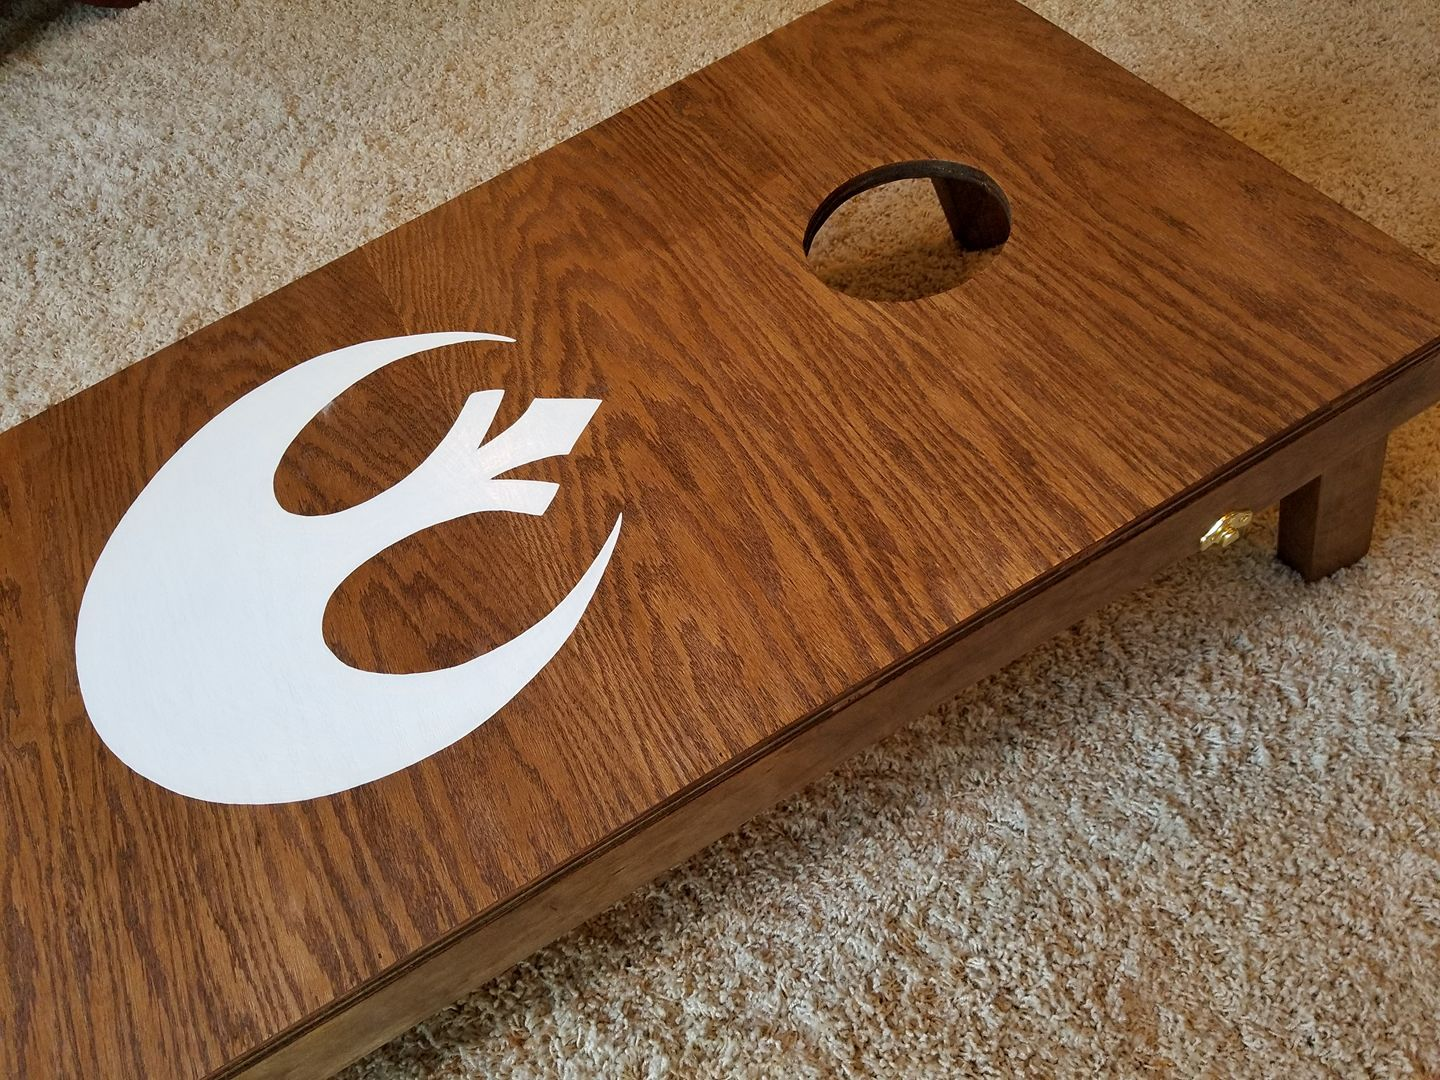 This One Was A First For Us Cornhole Boards Easier To Bullseye Than Womp Rats With Your T16 Cornhole Boards Cornhole Woodworking Clutch places to find a pool of womp rats are at house parties. www pinterest ph